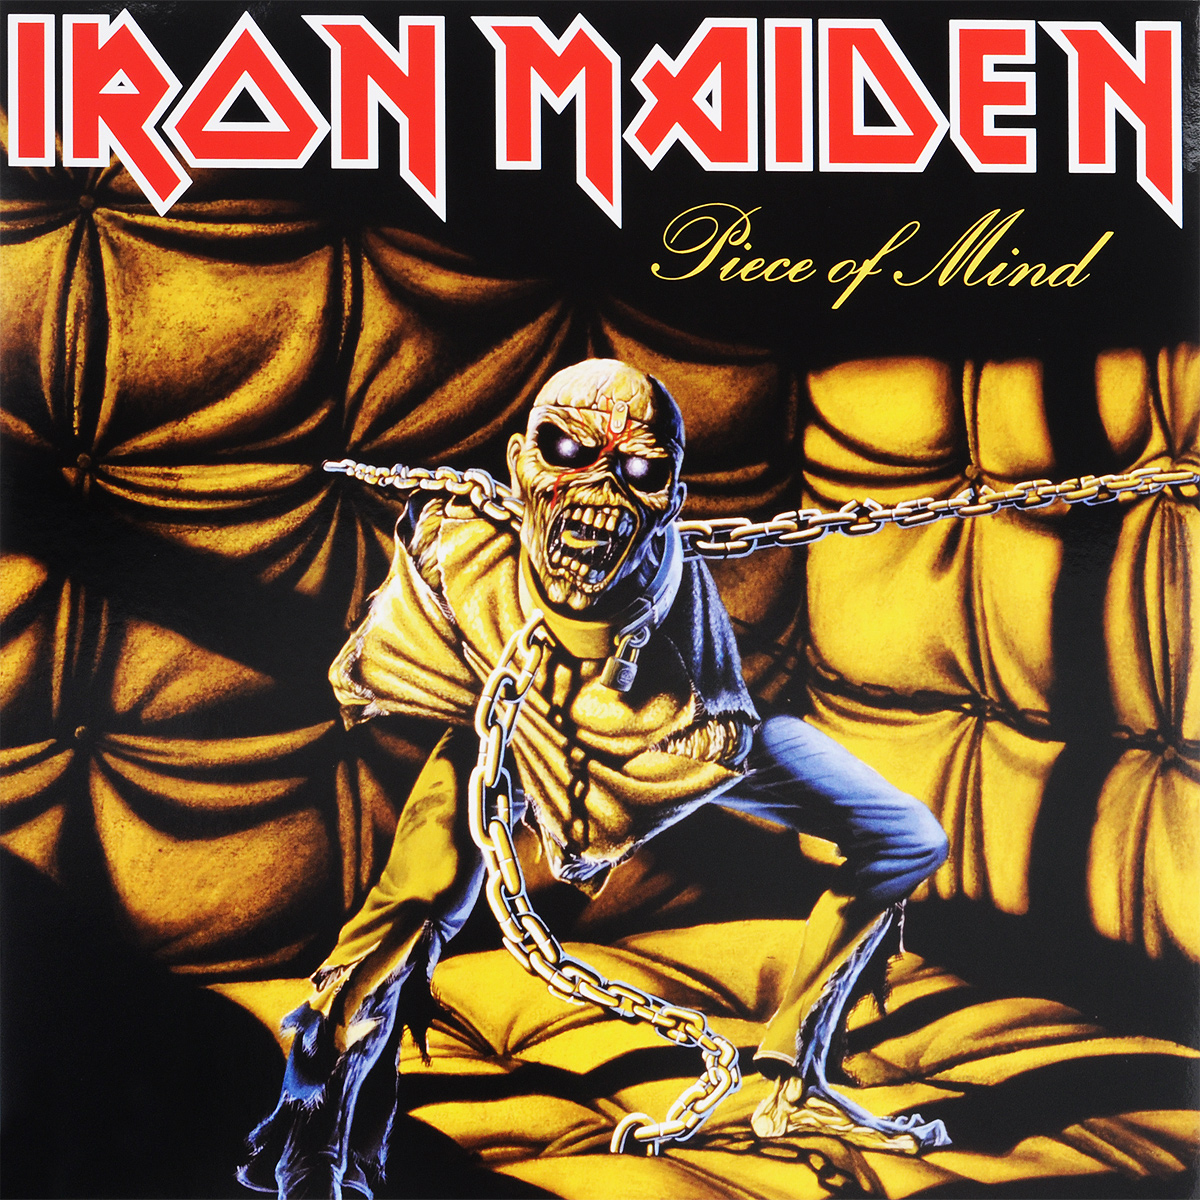 Iron Maiden Iron Maiden. Piece Of Mind (LP) iron maiden iron maiden a matter of life and death 2 lp